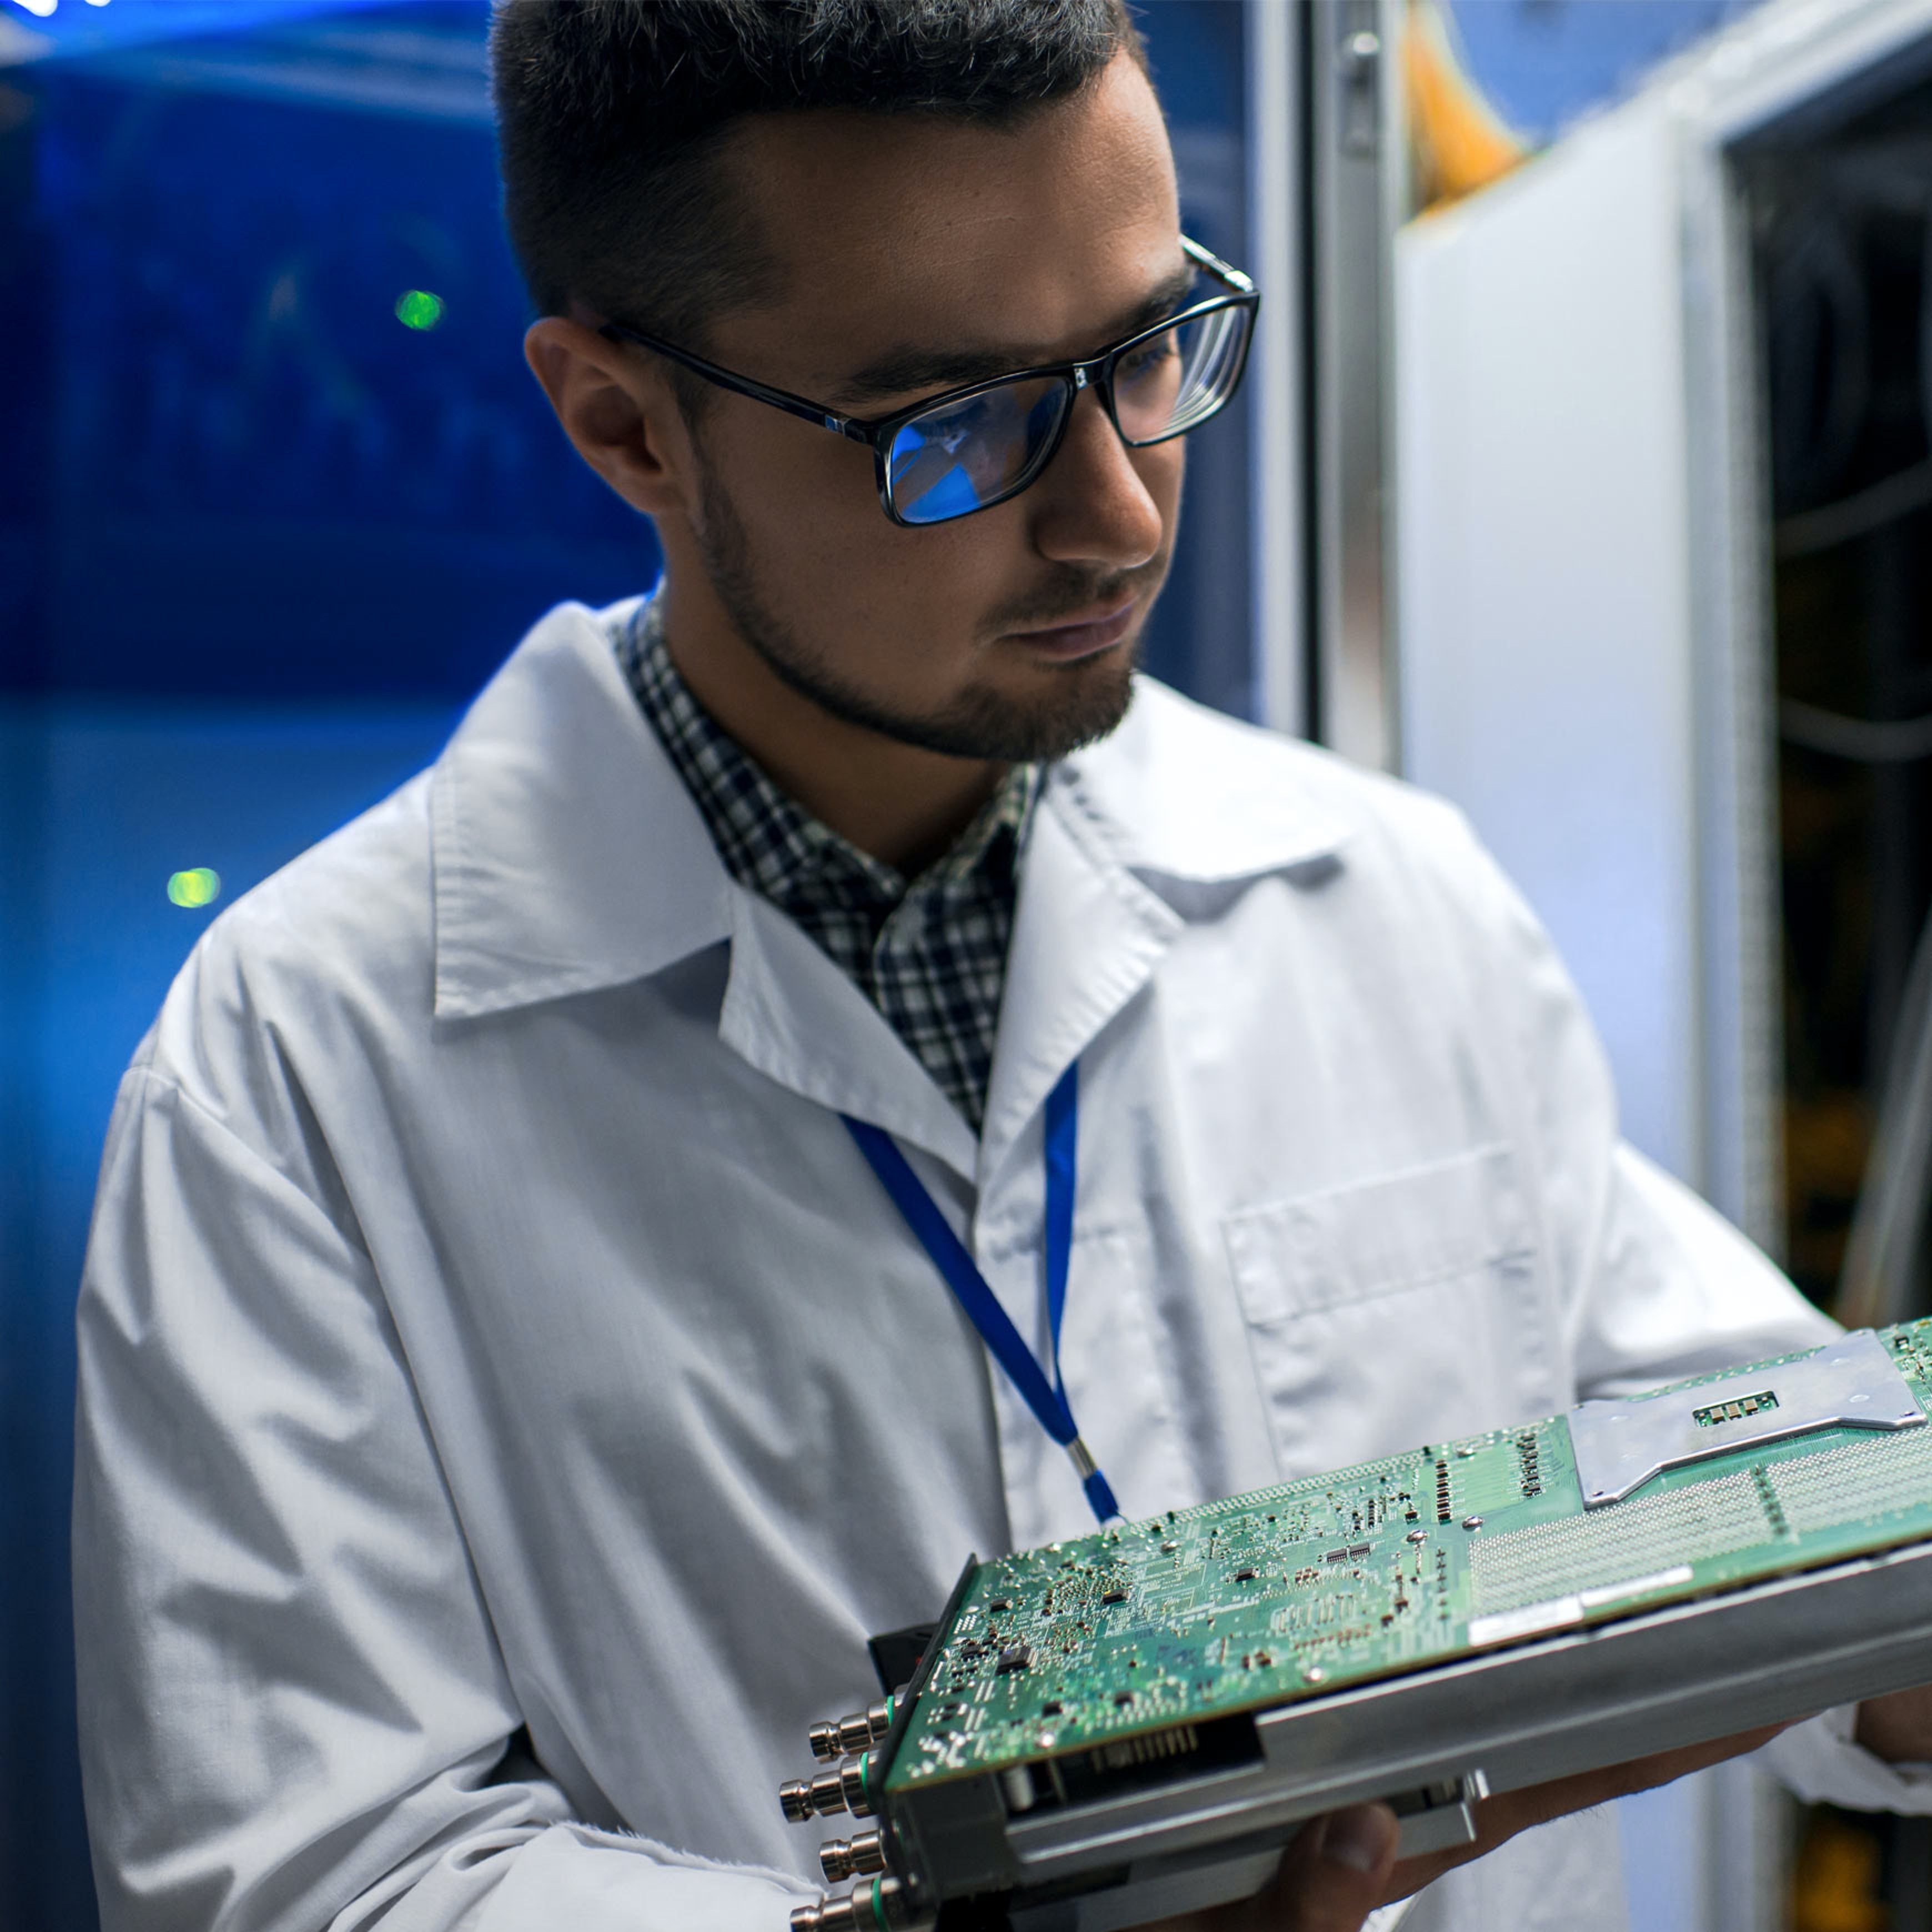 male employee in lab coat looking at motherboard